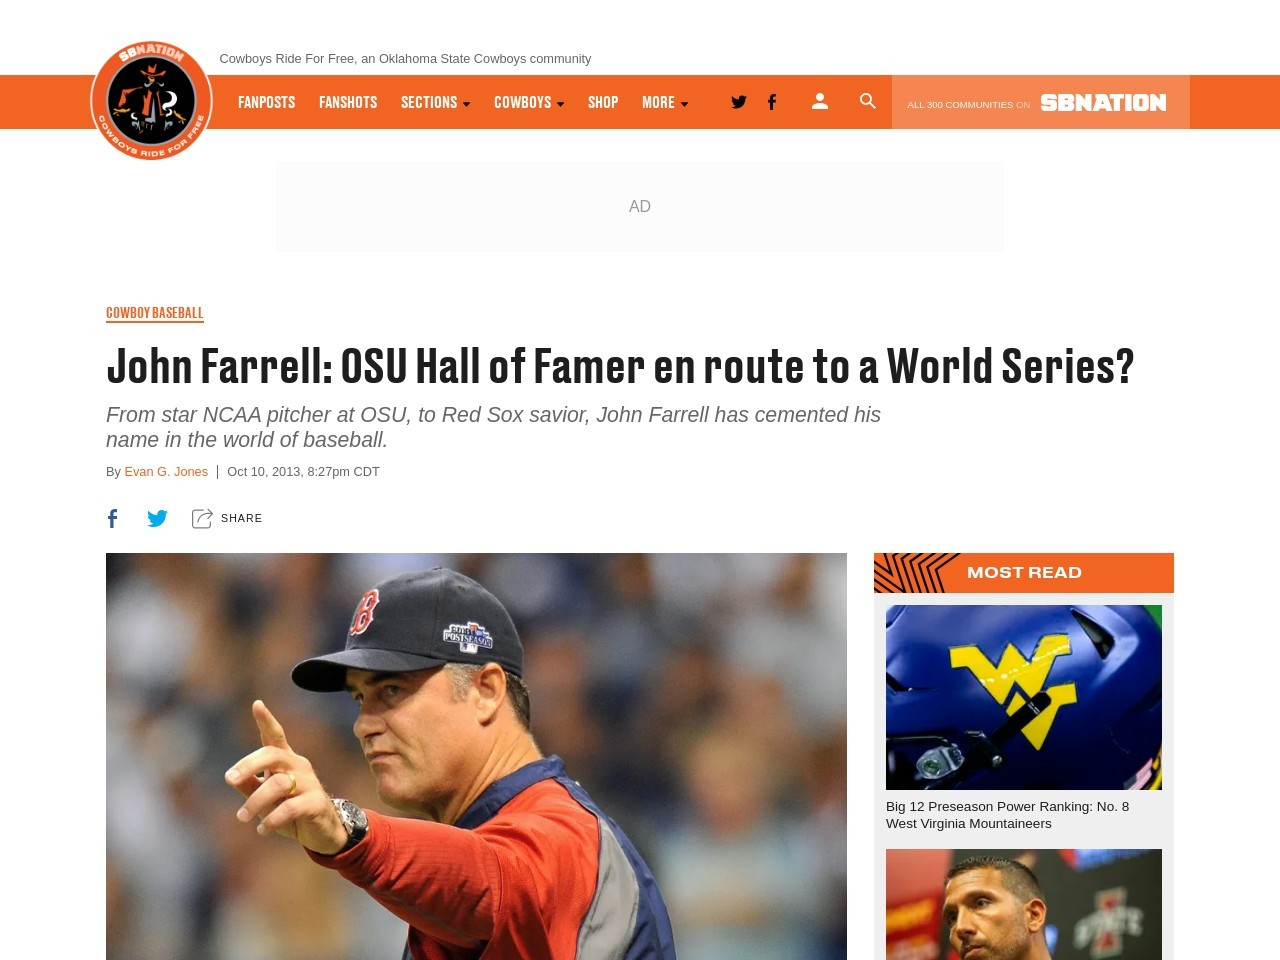 John Farrell: OSU Hall of Famer en route to a World Series?